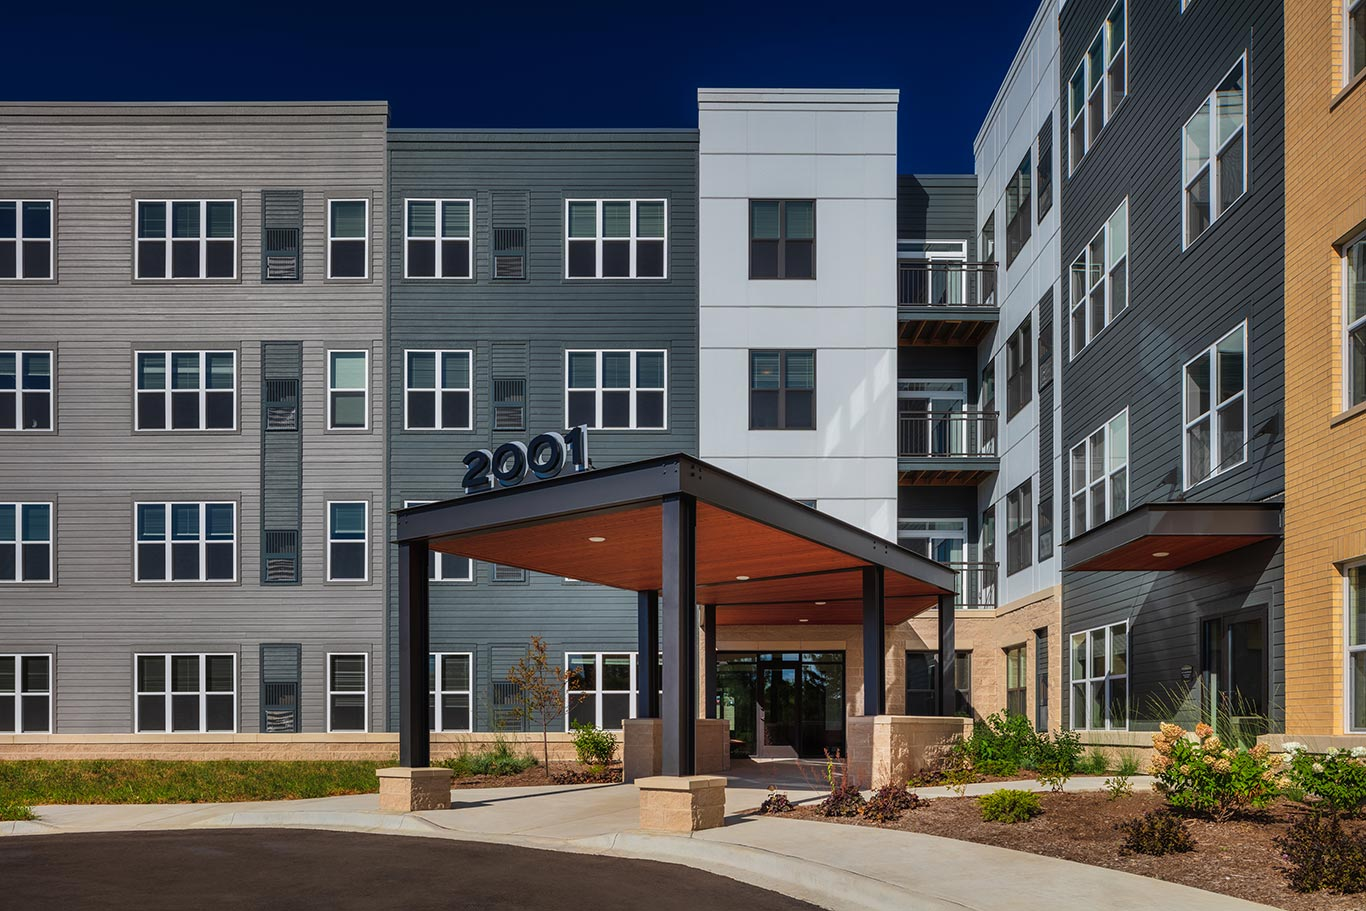 The Highline Senior Apartments in Fitchburg, Wis. by JLA Architects